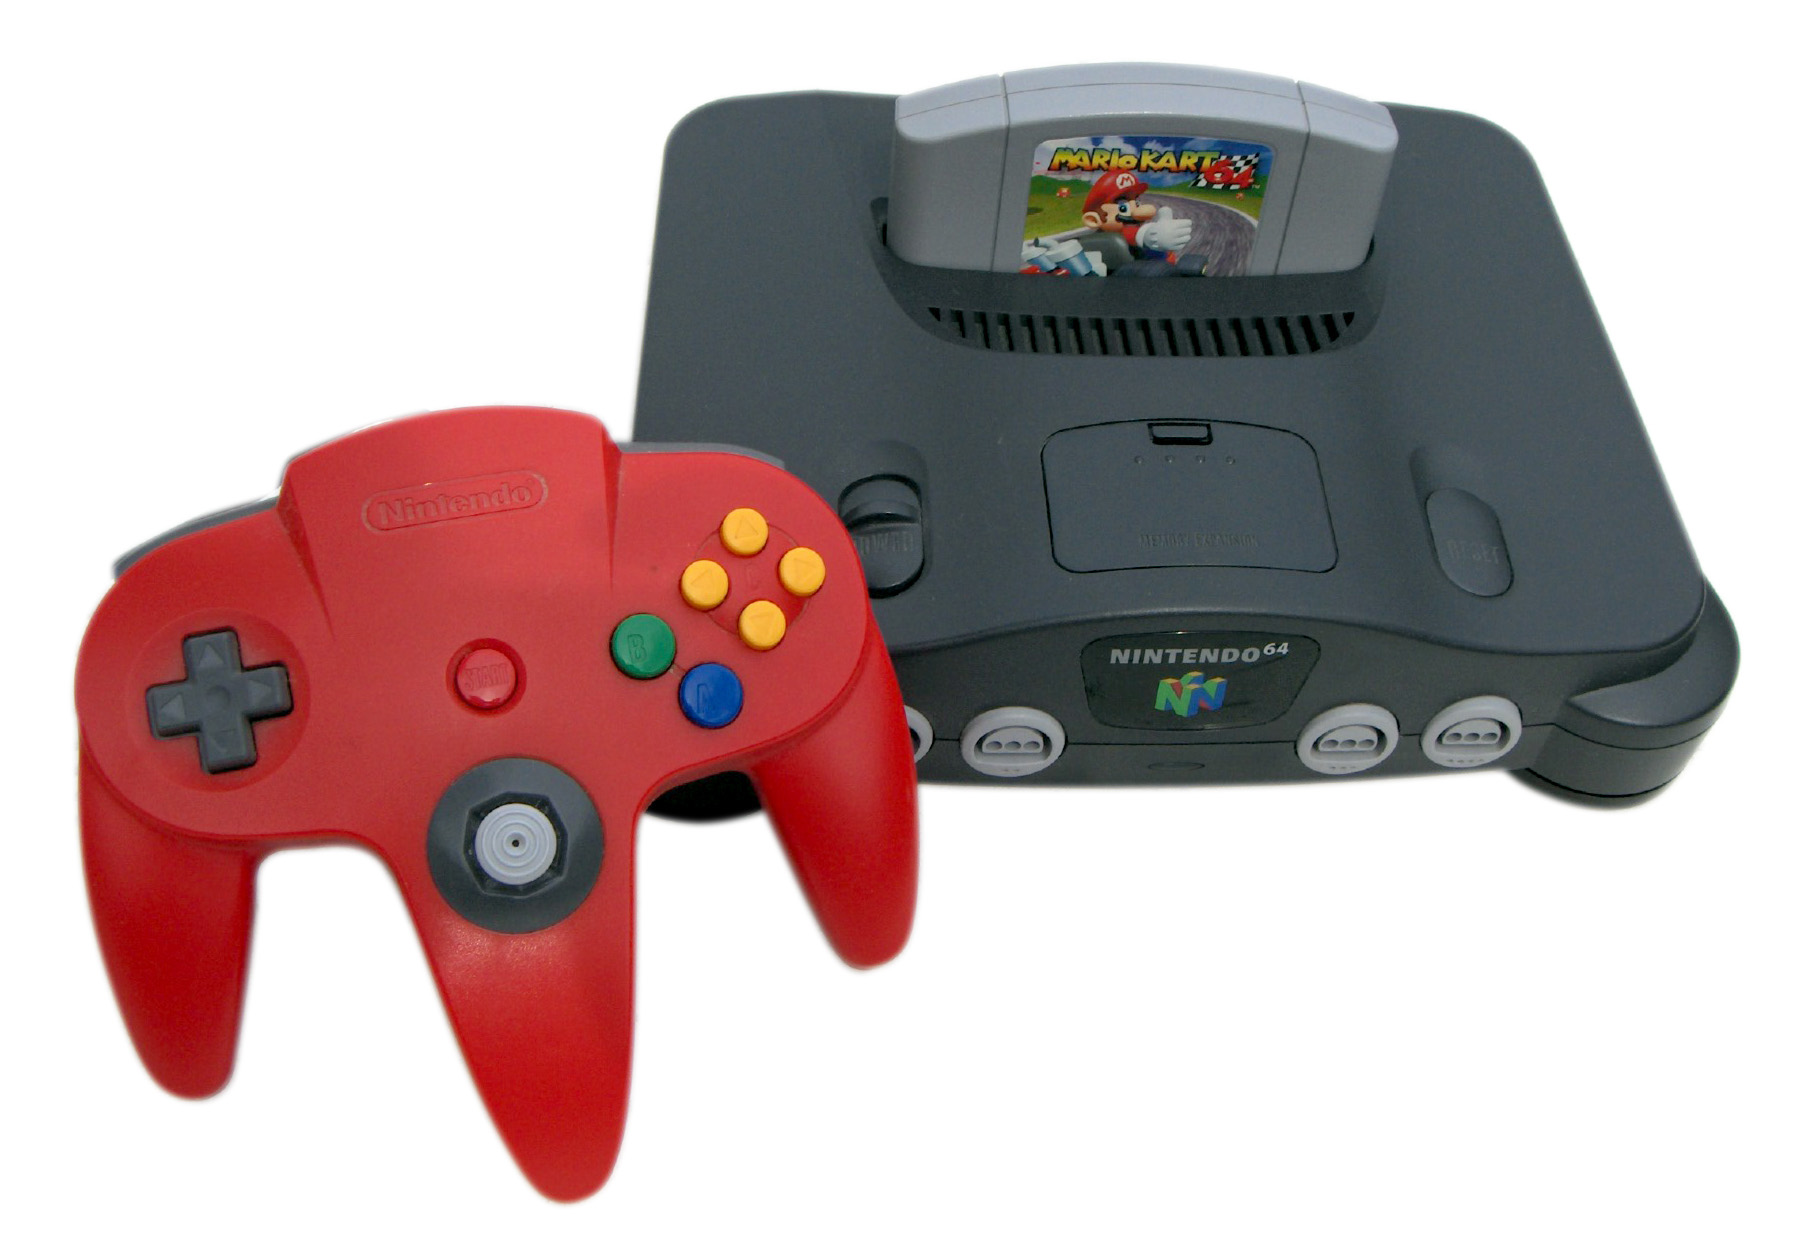 The 3DS overtakes the N64